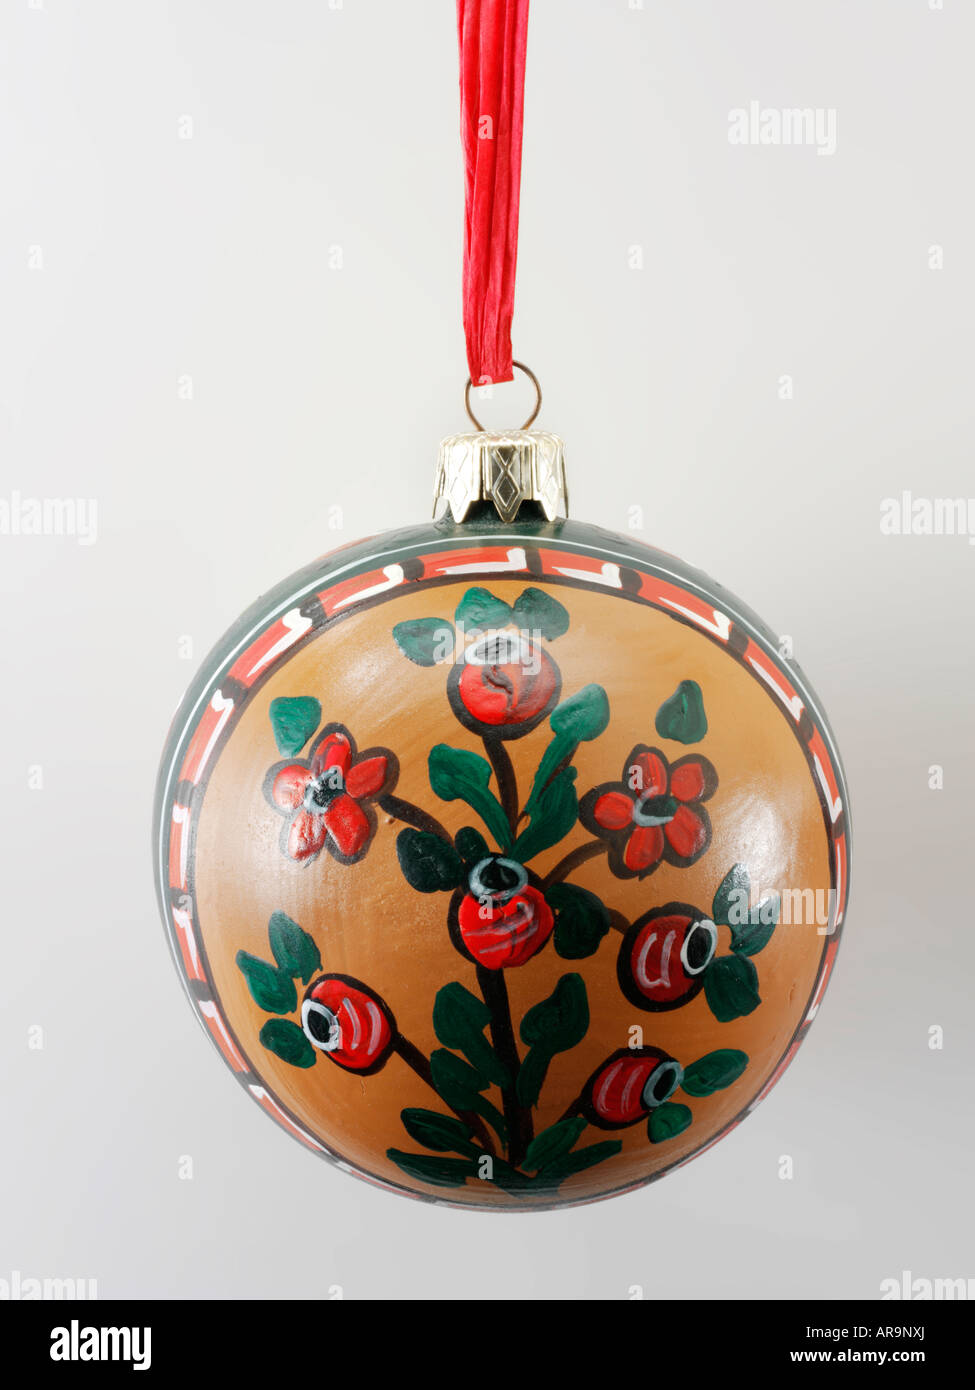 Traditional festive  hand painted Christmas decoration with folk design in green and red - Stock Image